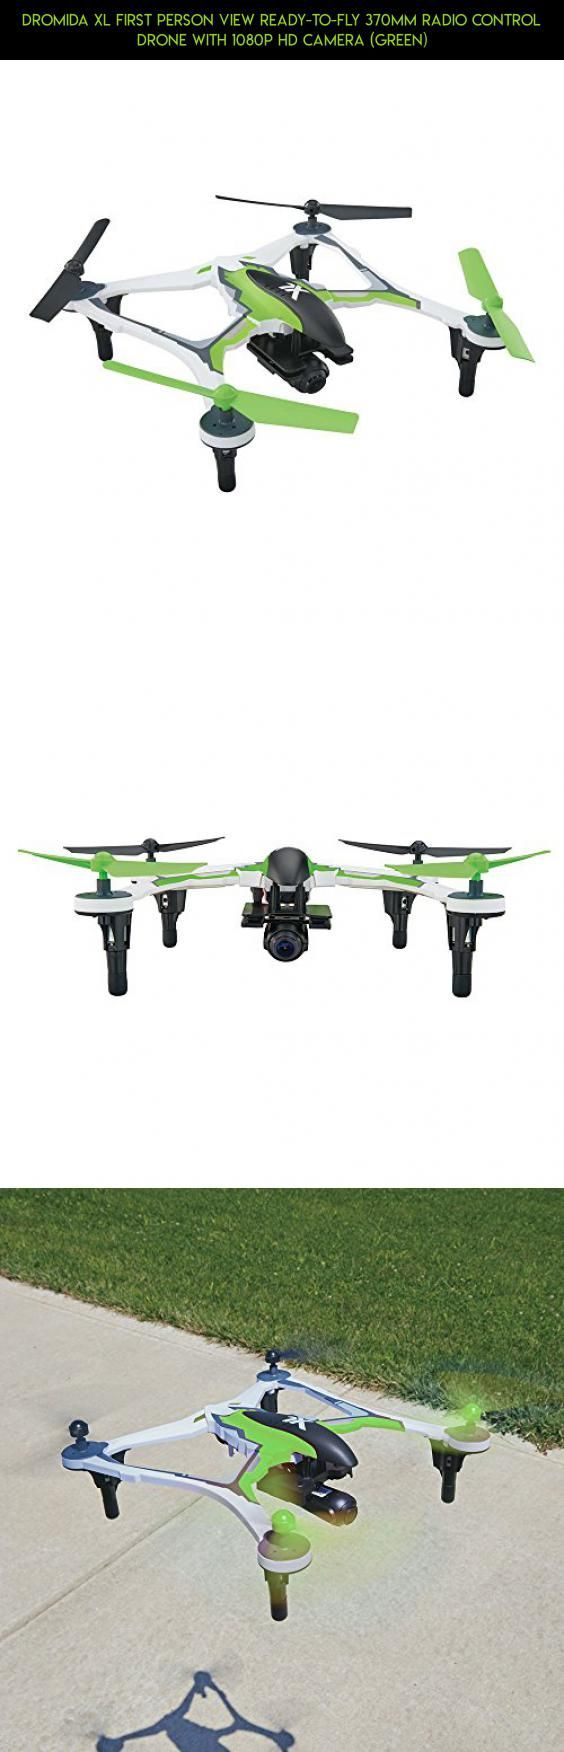 Dromida XL First Person View Ready-to-Fly 370mm Radio Control Drone with 1080p HD Camera (Green) #products #camera #lipo #plans #tech #gadgets #technology #racing #shopping #kit #2s #drone #dromida #fpv #parts